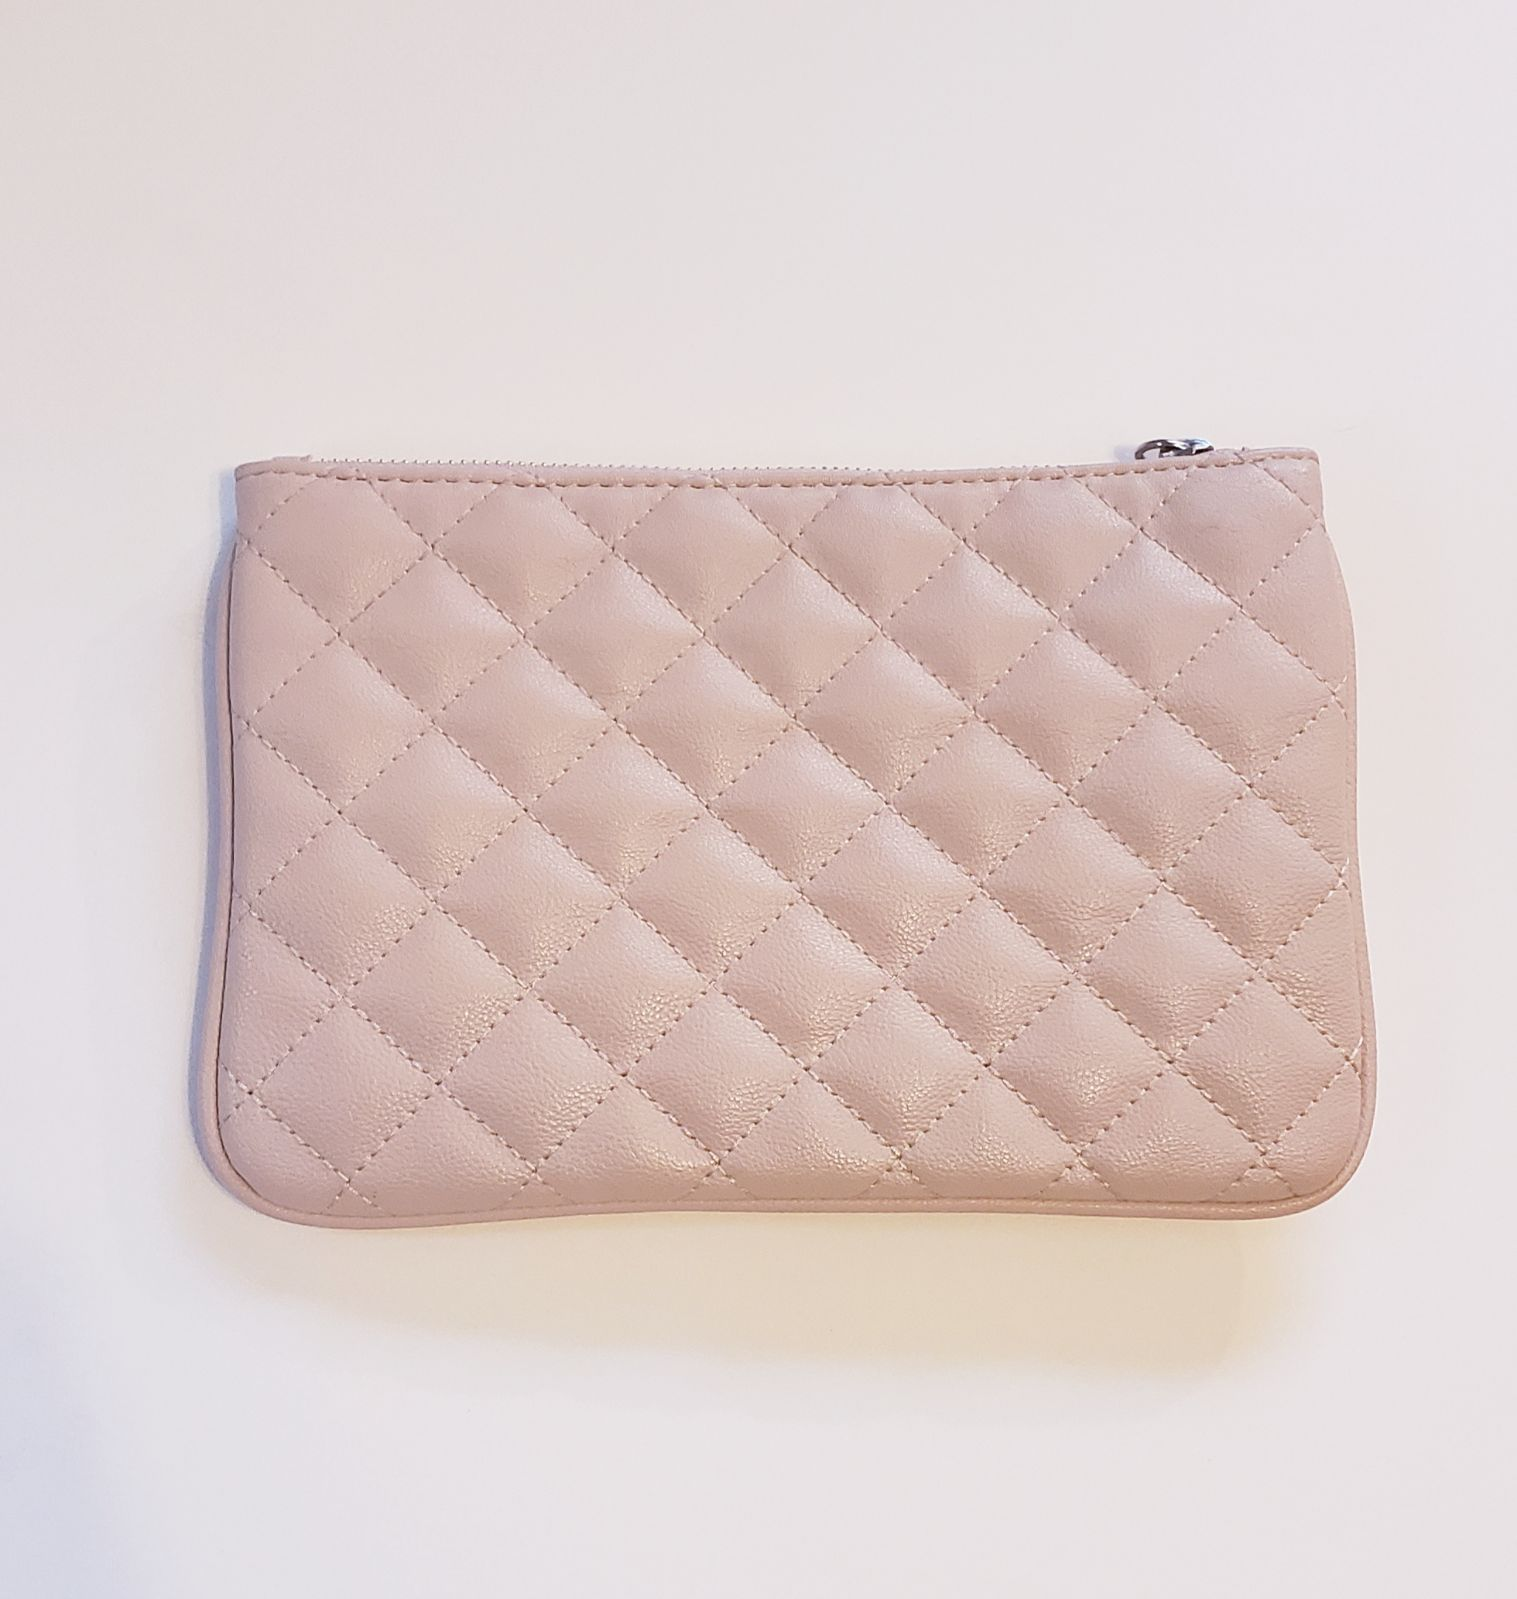 Express Cosmetics Bag Light Pink